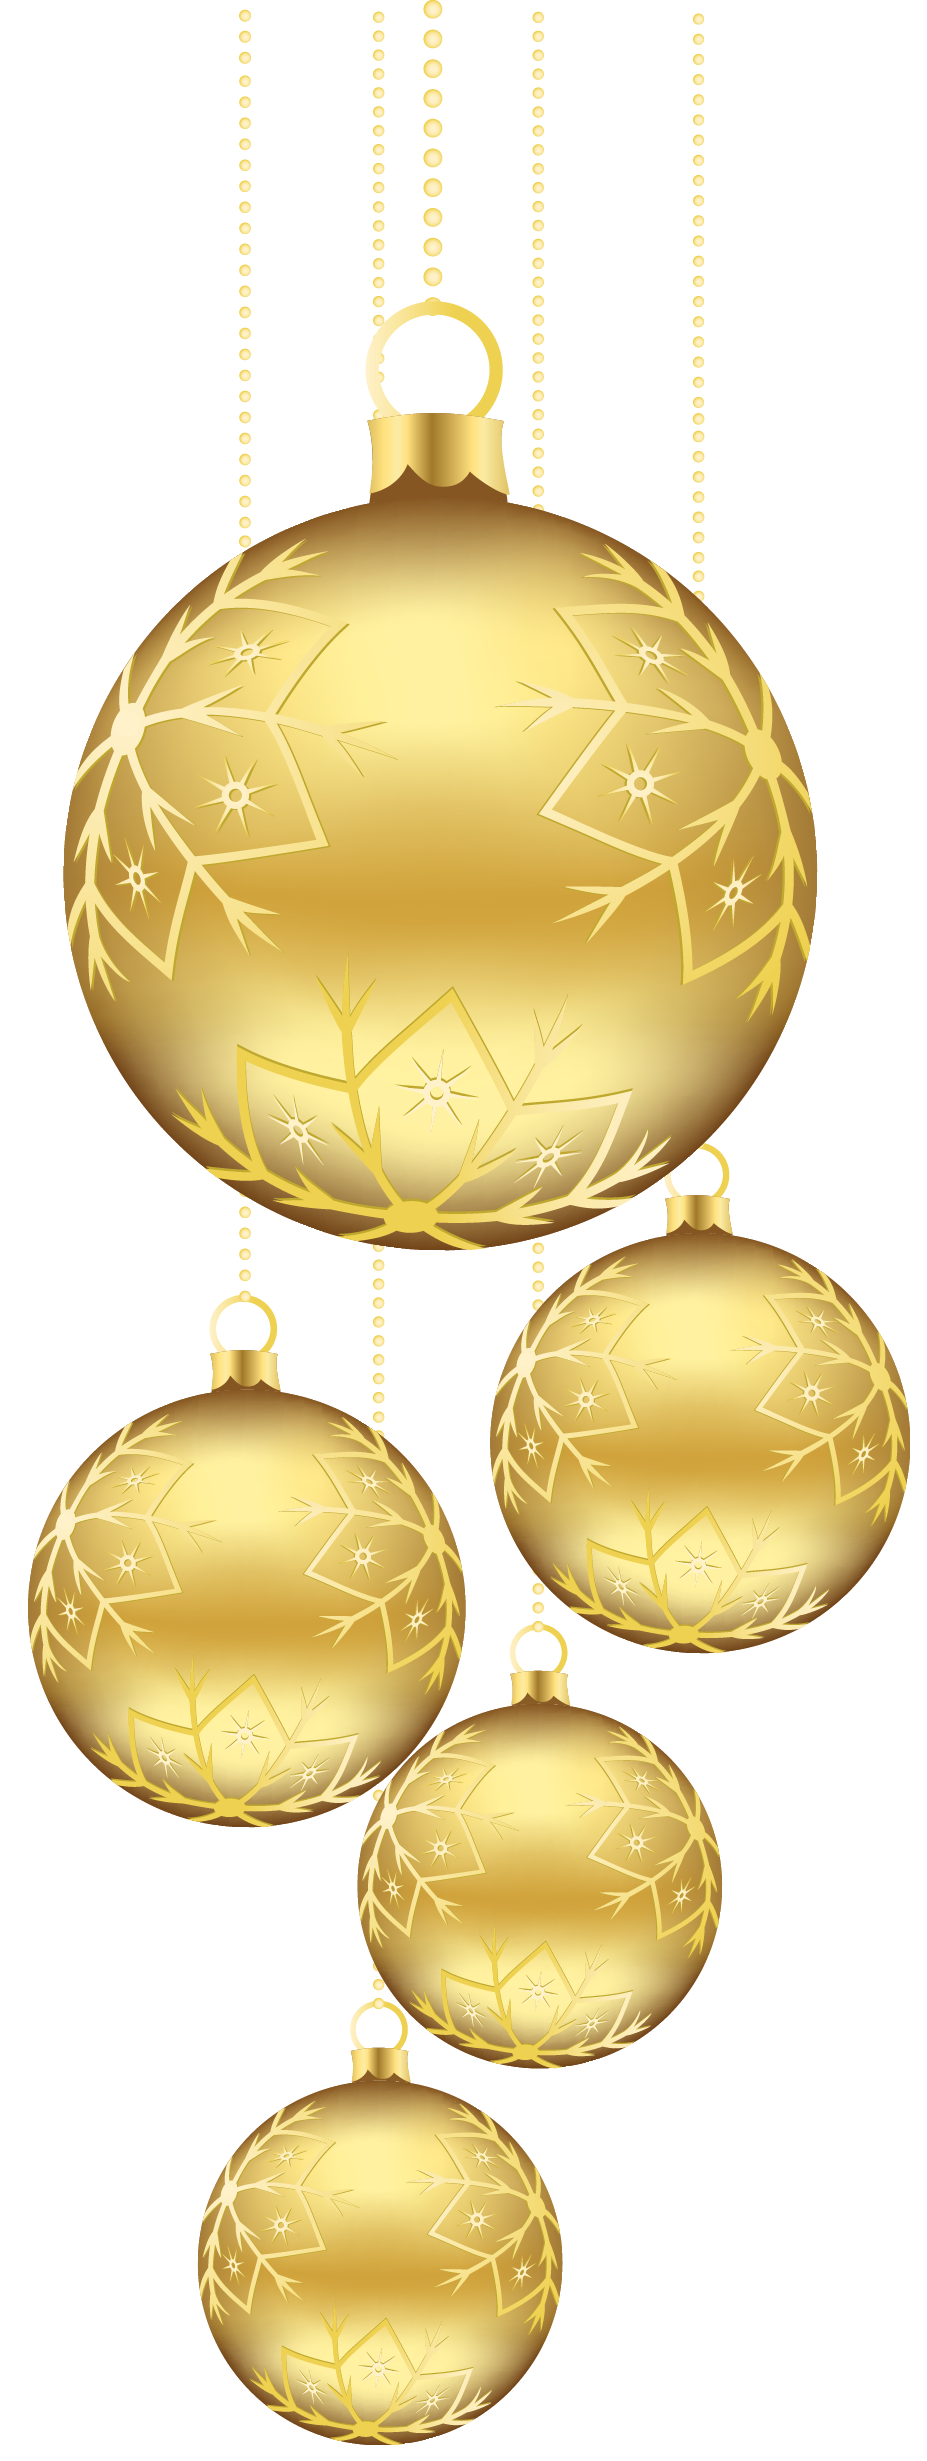 Gold christmas clipart clip art library stock Gold Christmas Ornament Clipart – Merry Christmas And Happy New Year ... clip art library stock